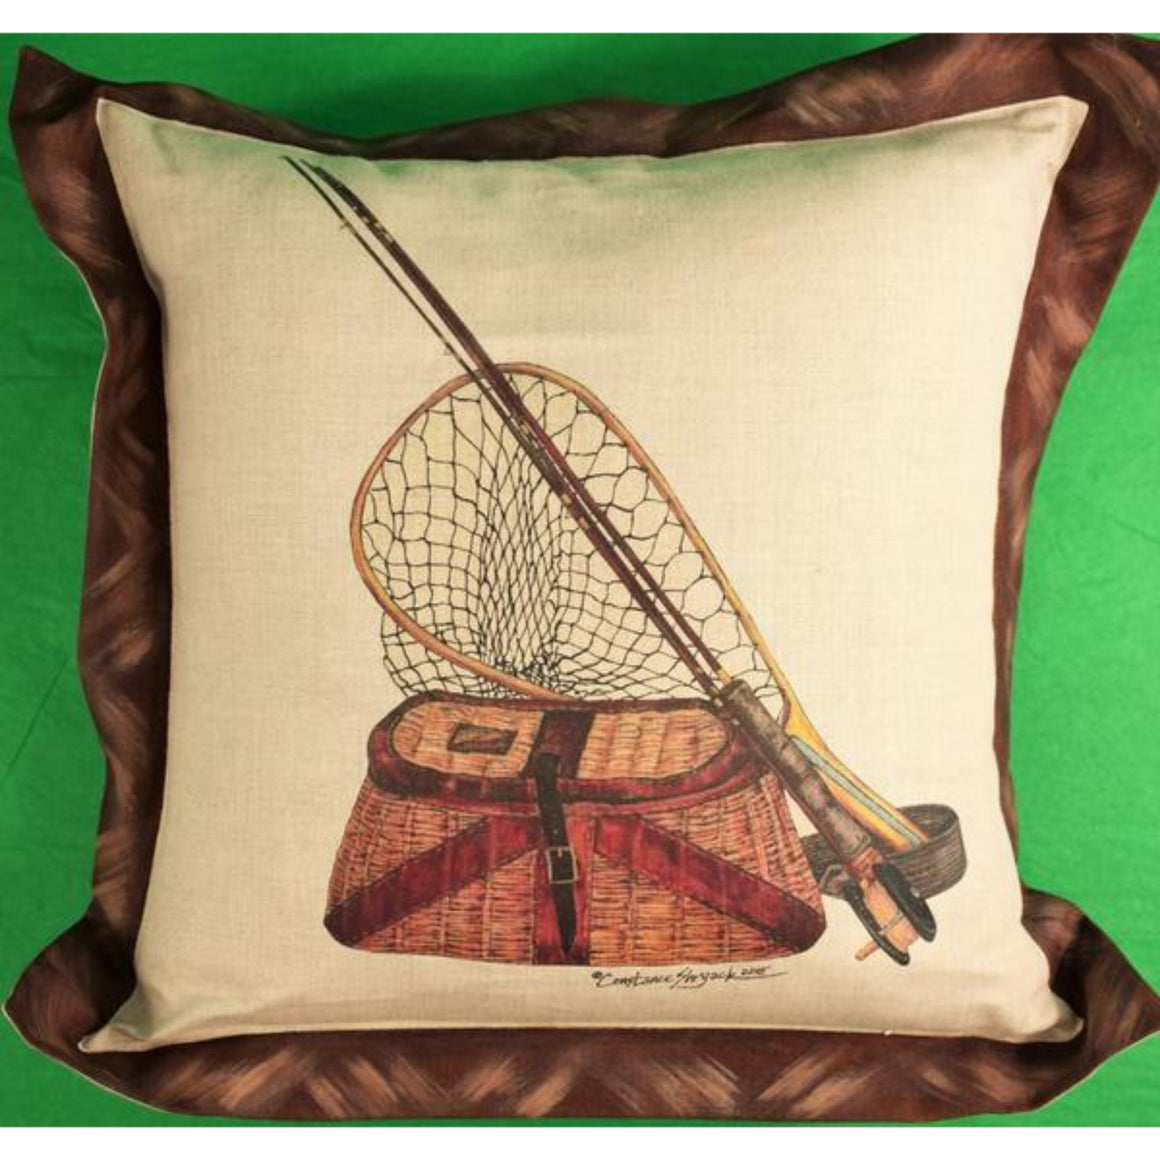 'Orvis Fly Fishing: Creel/Fly Rod & Net Hand-Painted 2015 Pillow'